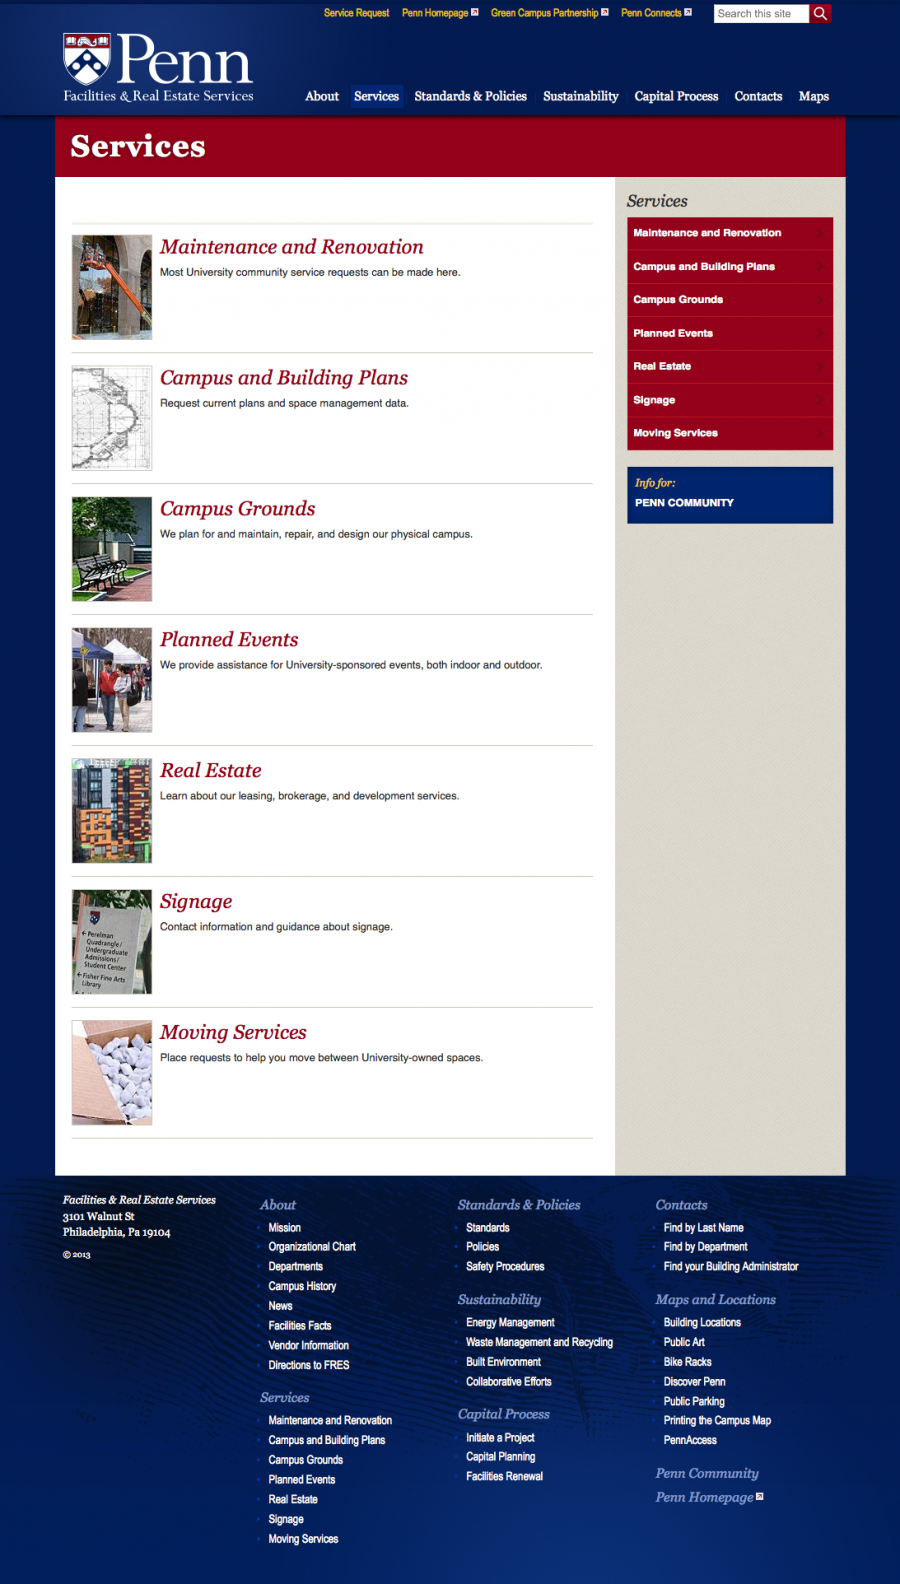 Penn Facilities and Real Estate Services Internal Landing Page of Services